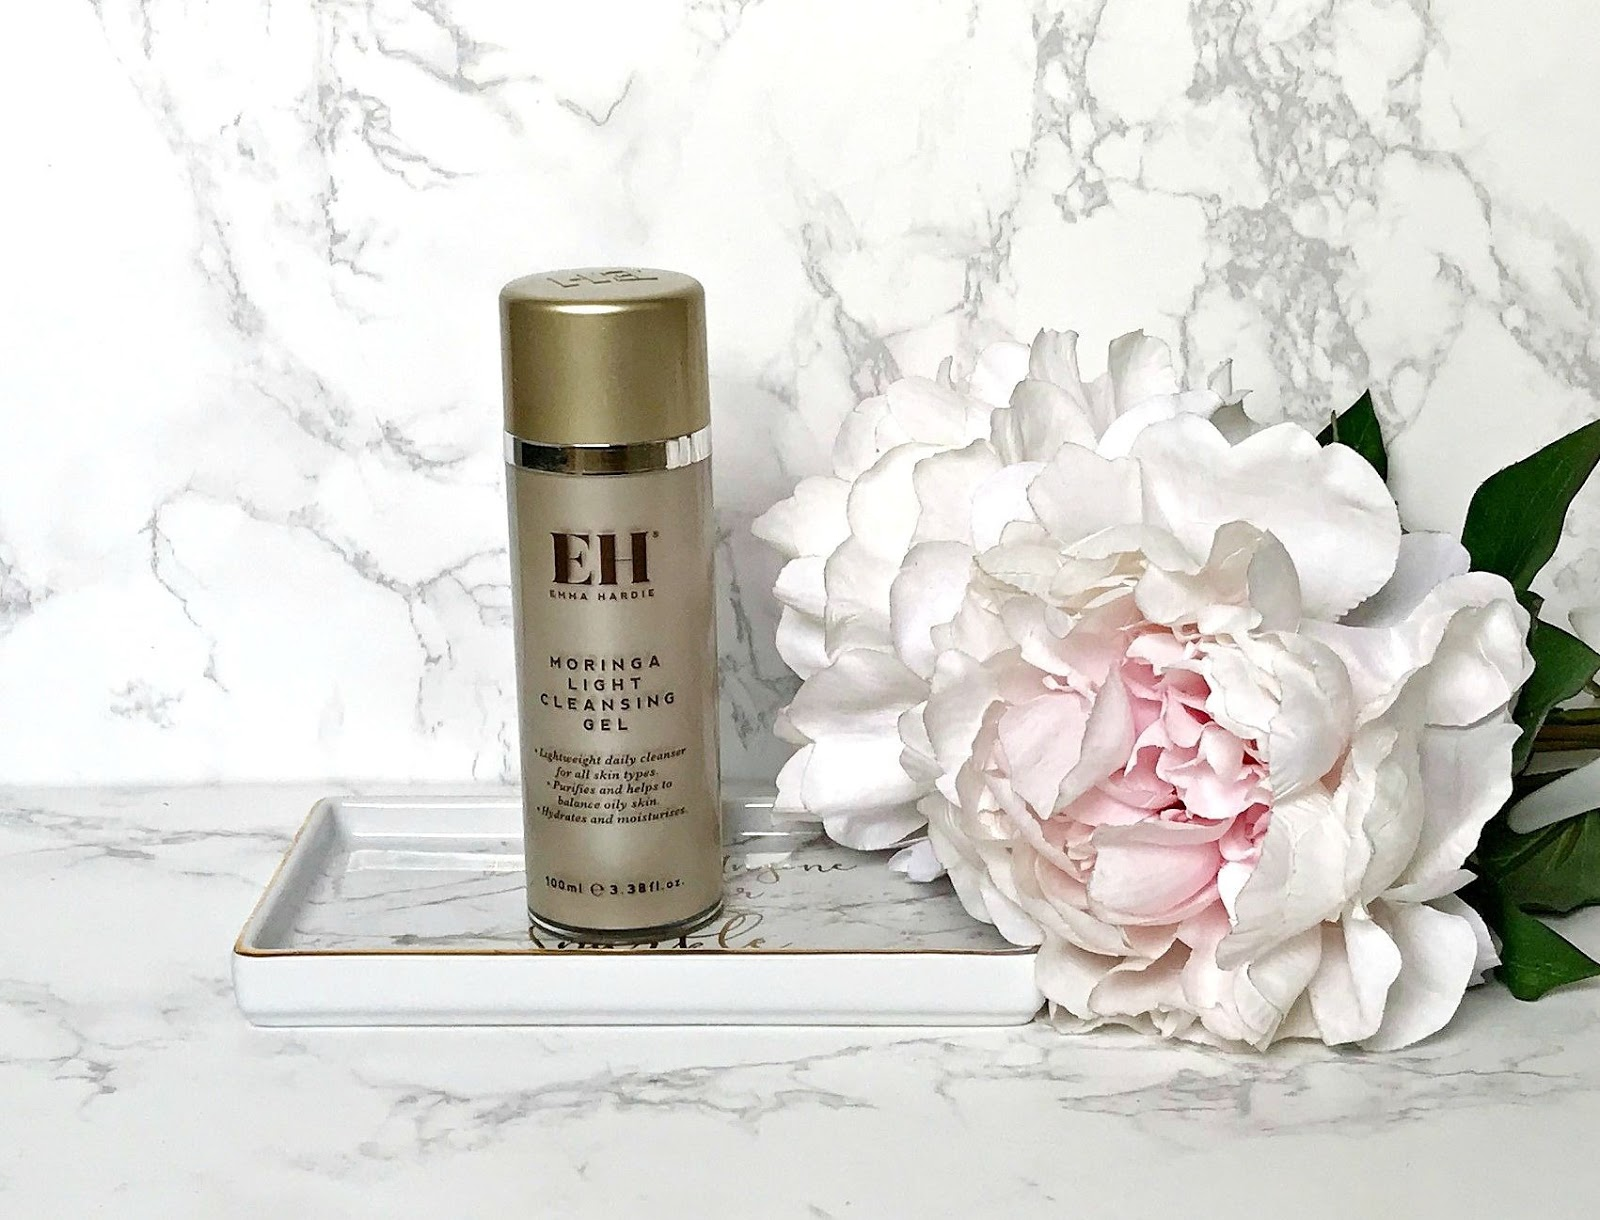 Emma Hardie Moringa Light Cleansing Gel Review